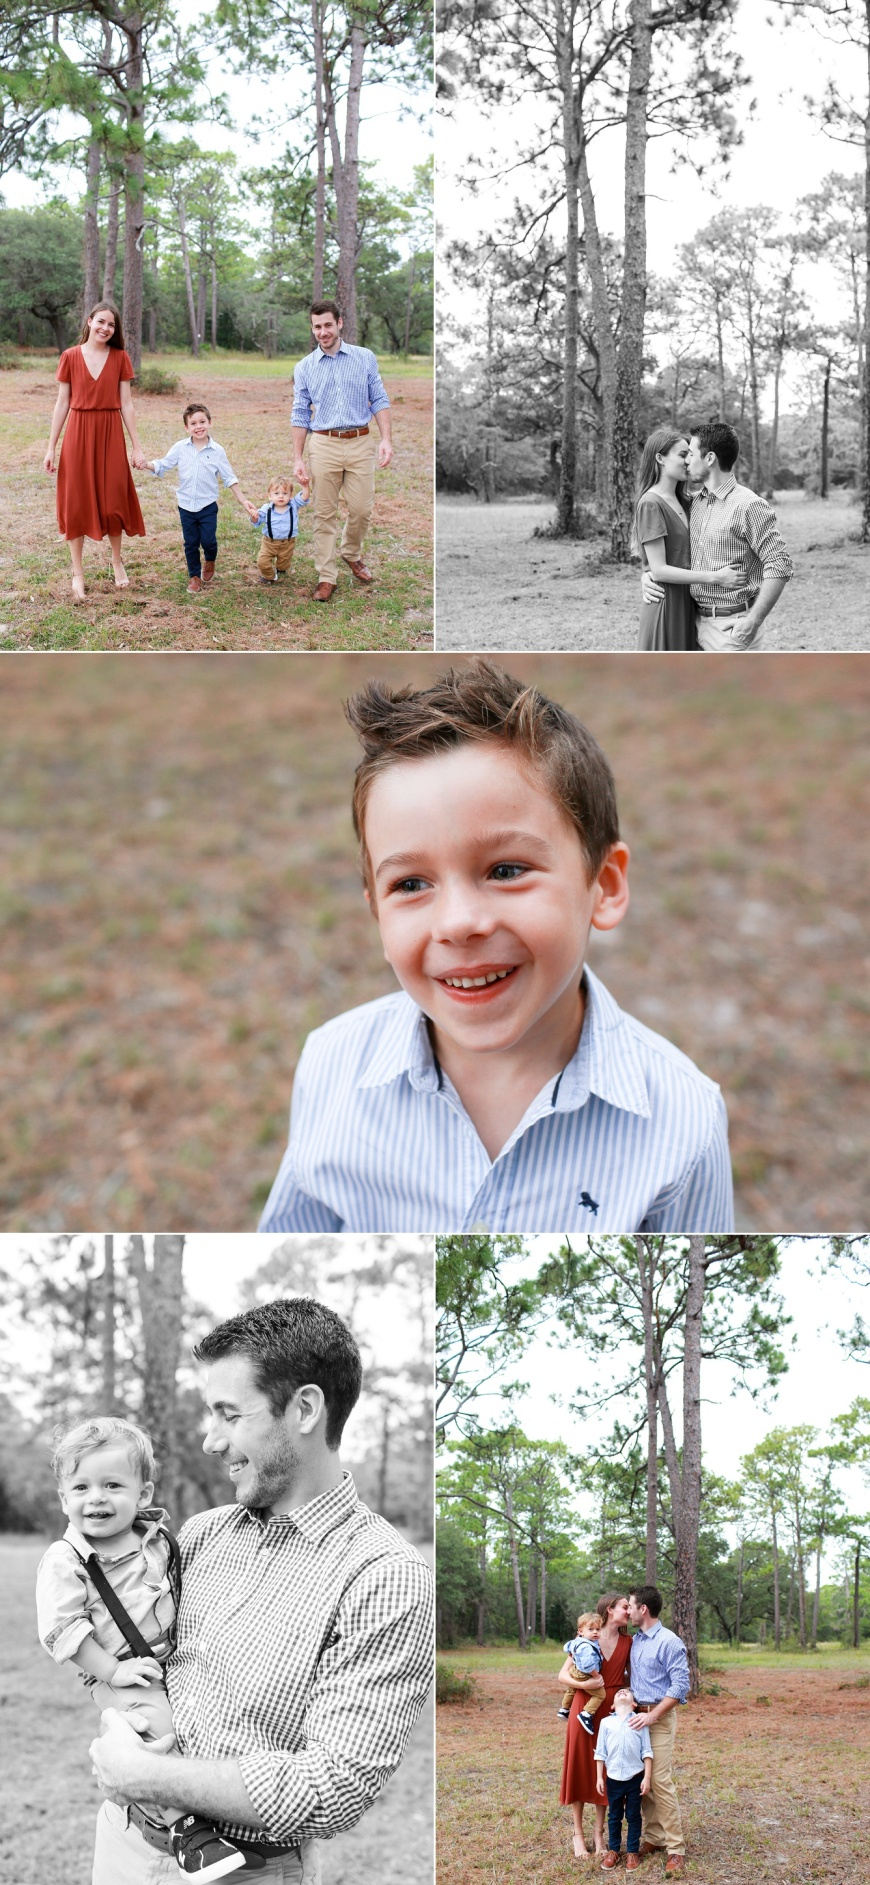 White-Point-Park-Niceville-Florida-Family-Photographer_1012.jpg